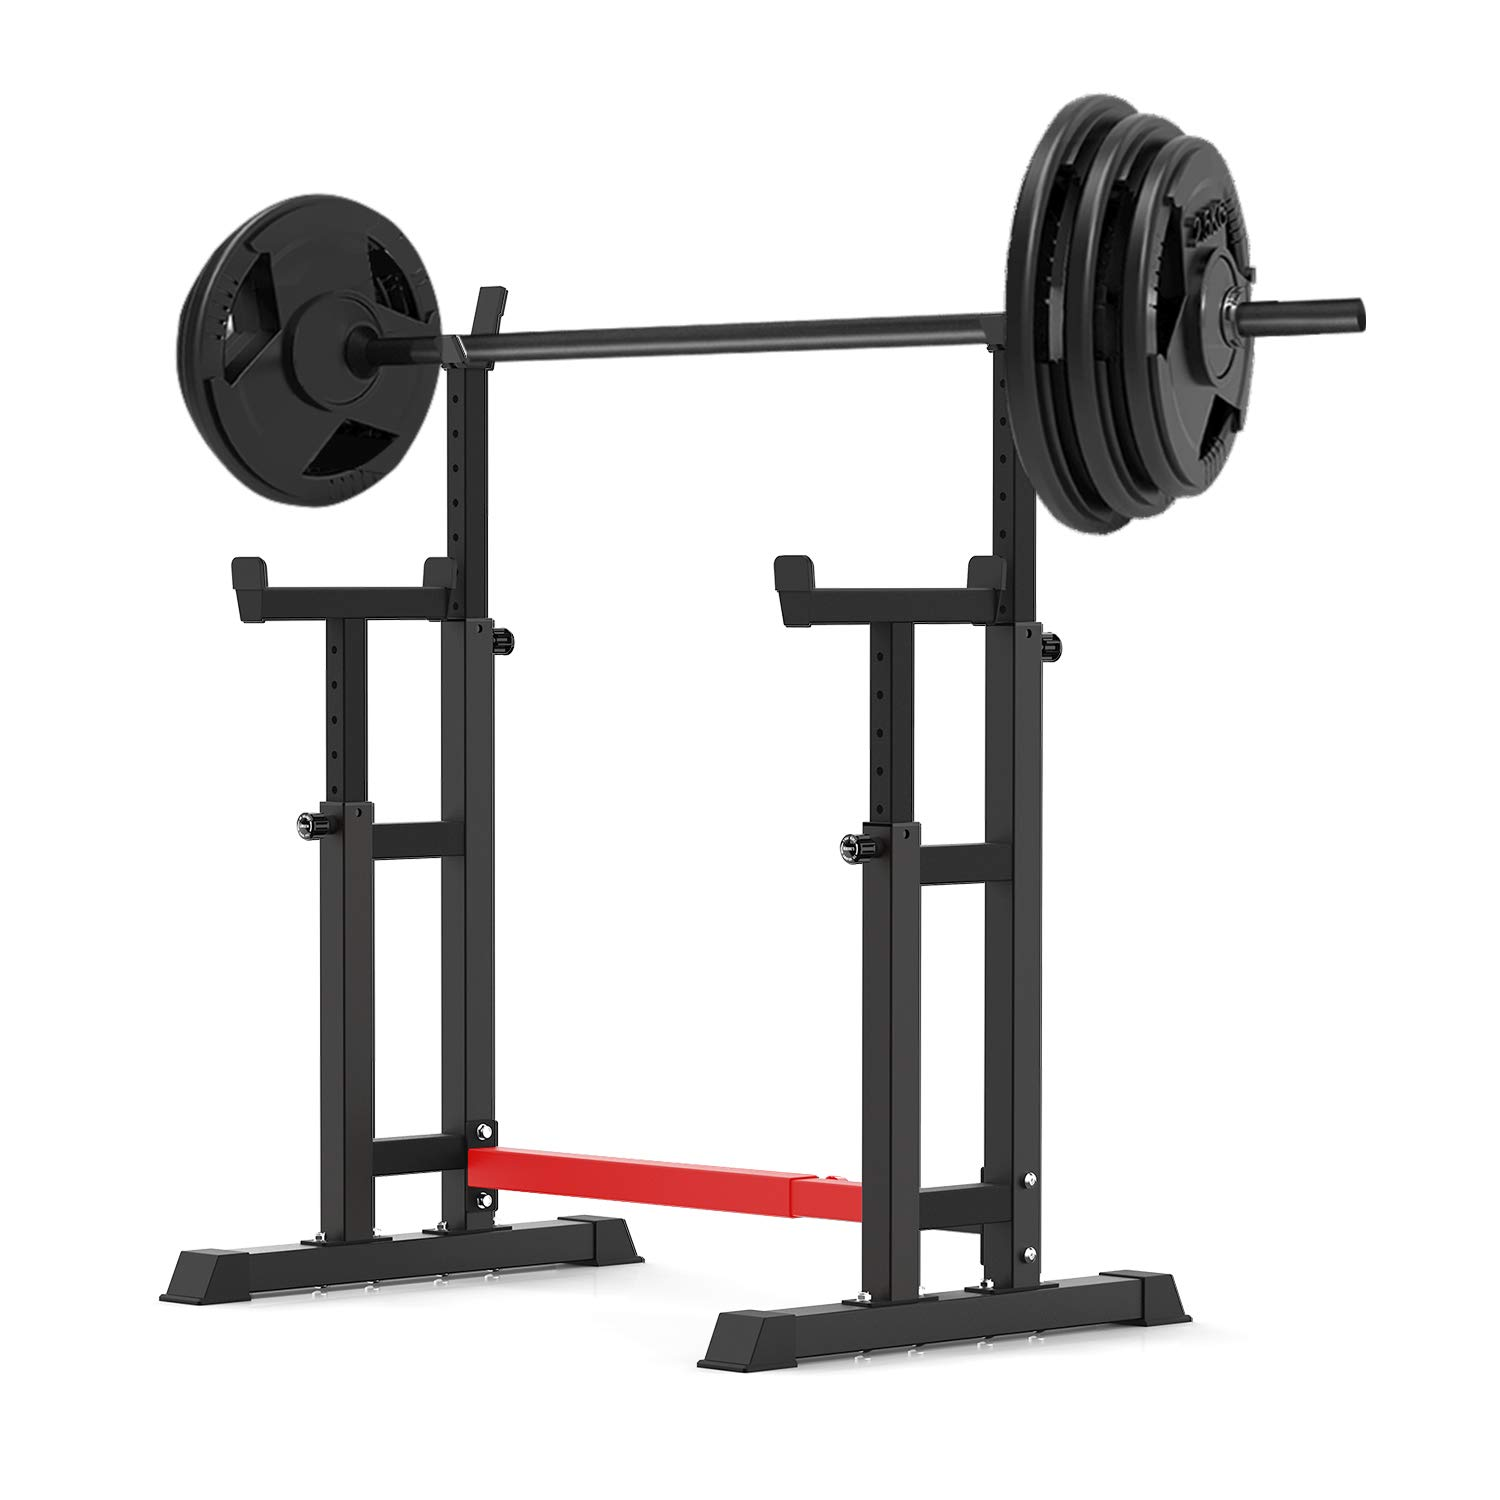 YouTen 800LBS Adjustable Sturdy Steel Barbell Squat Rack, Dumbbell Rack for Home Gym Exercise Fitness,Height Range 26.8'' to 55.9'' Red Black